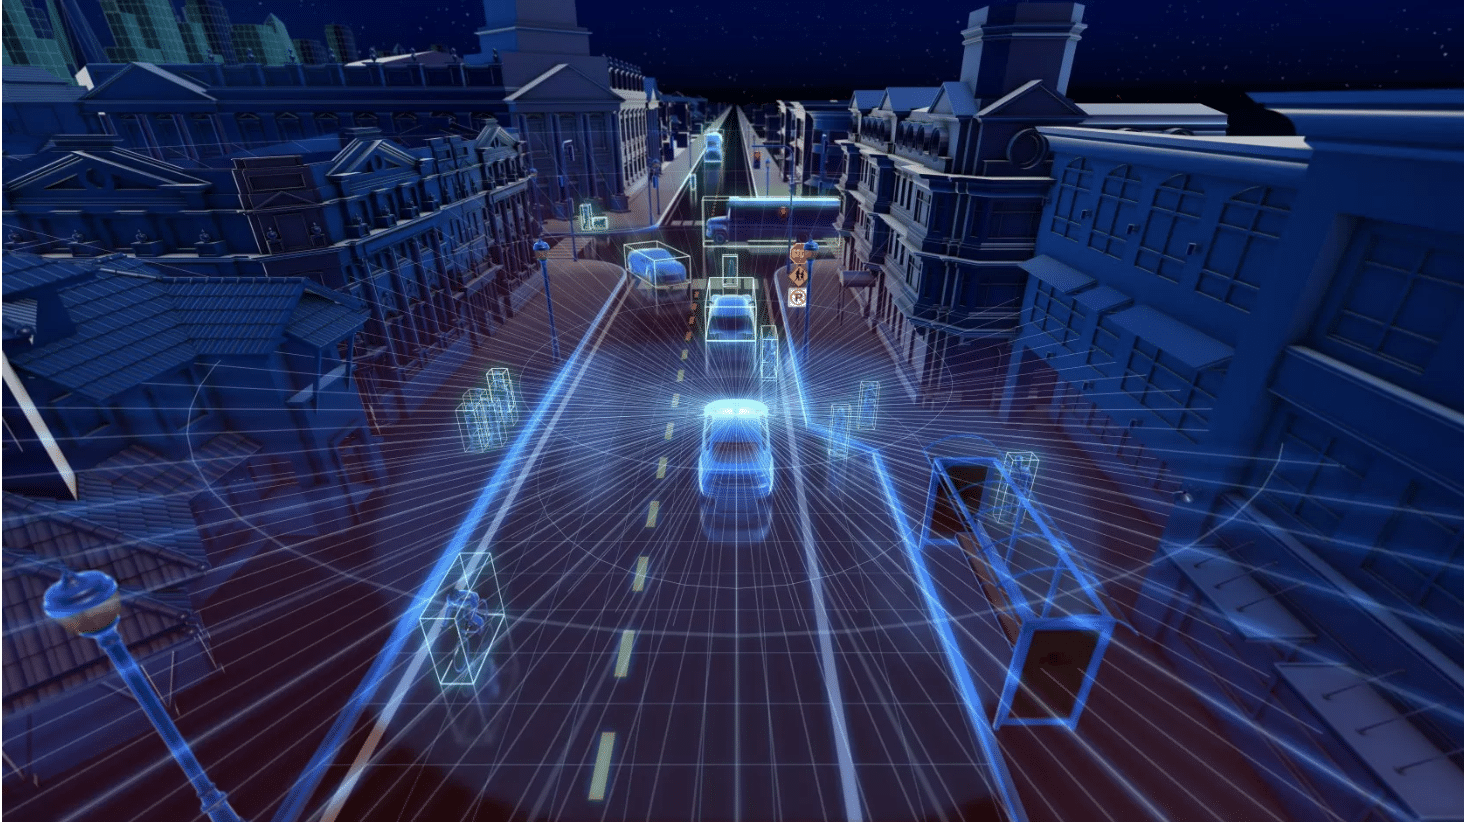 How Does a Self-Driving Car See? | NVIDIA Blog